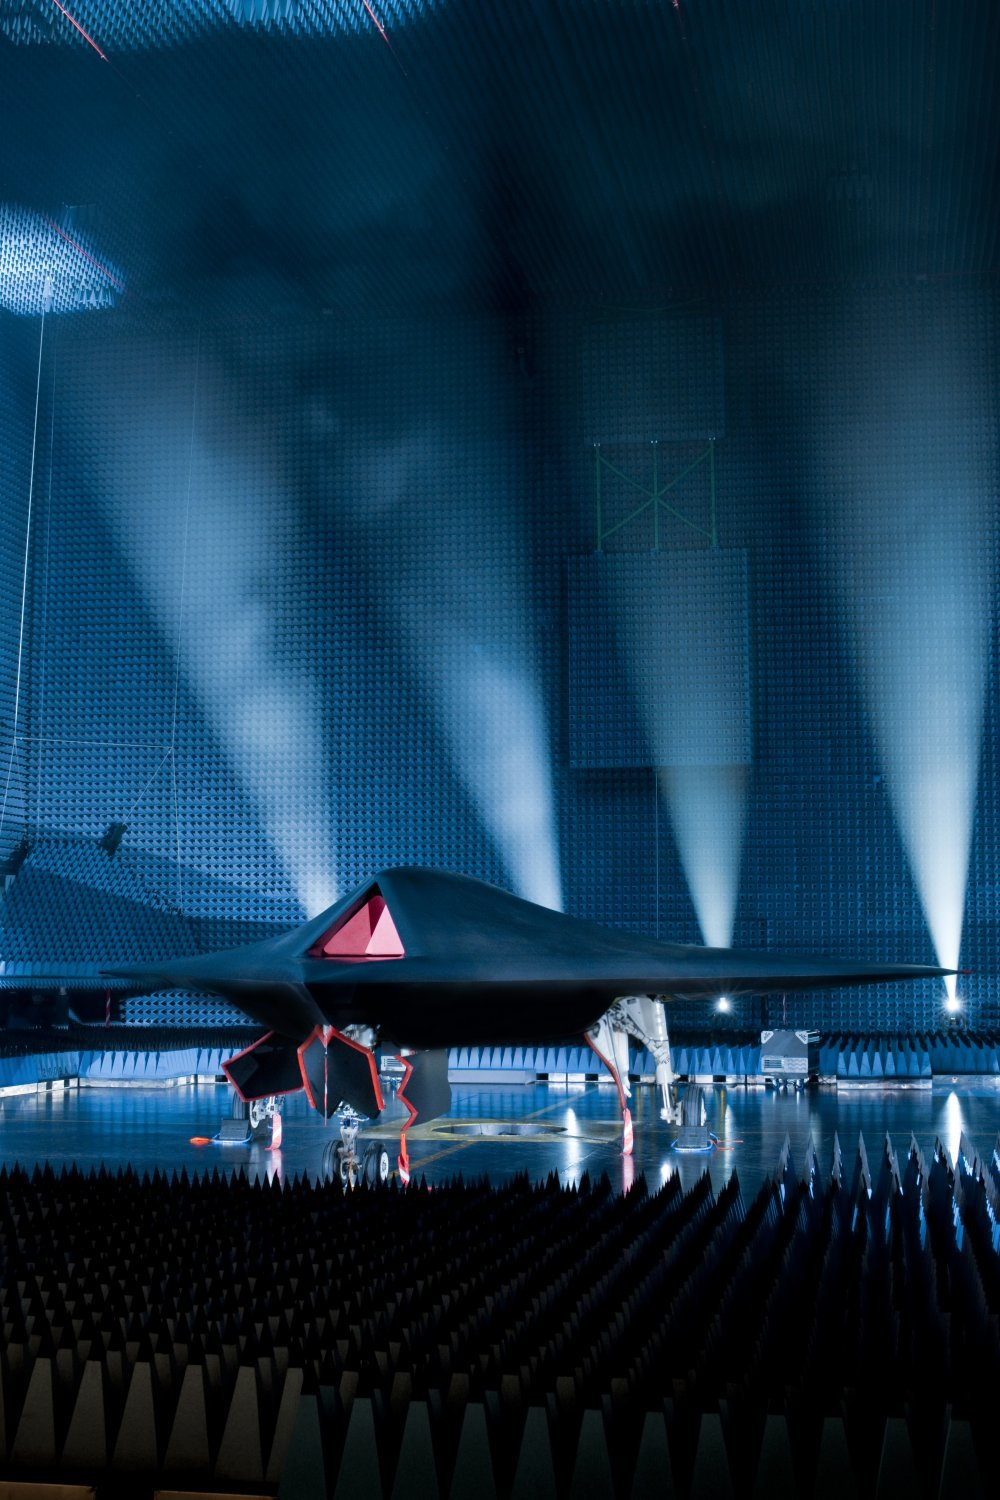 http://www.defensereview.com/wp-content/uploads/2010/07/BAE_Taranis_Jet_UCAV_Low-Observable_3.jpg